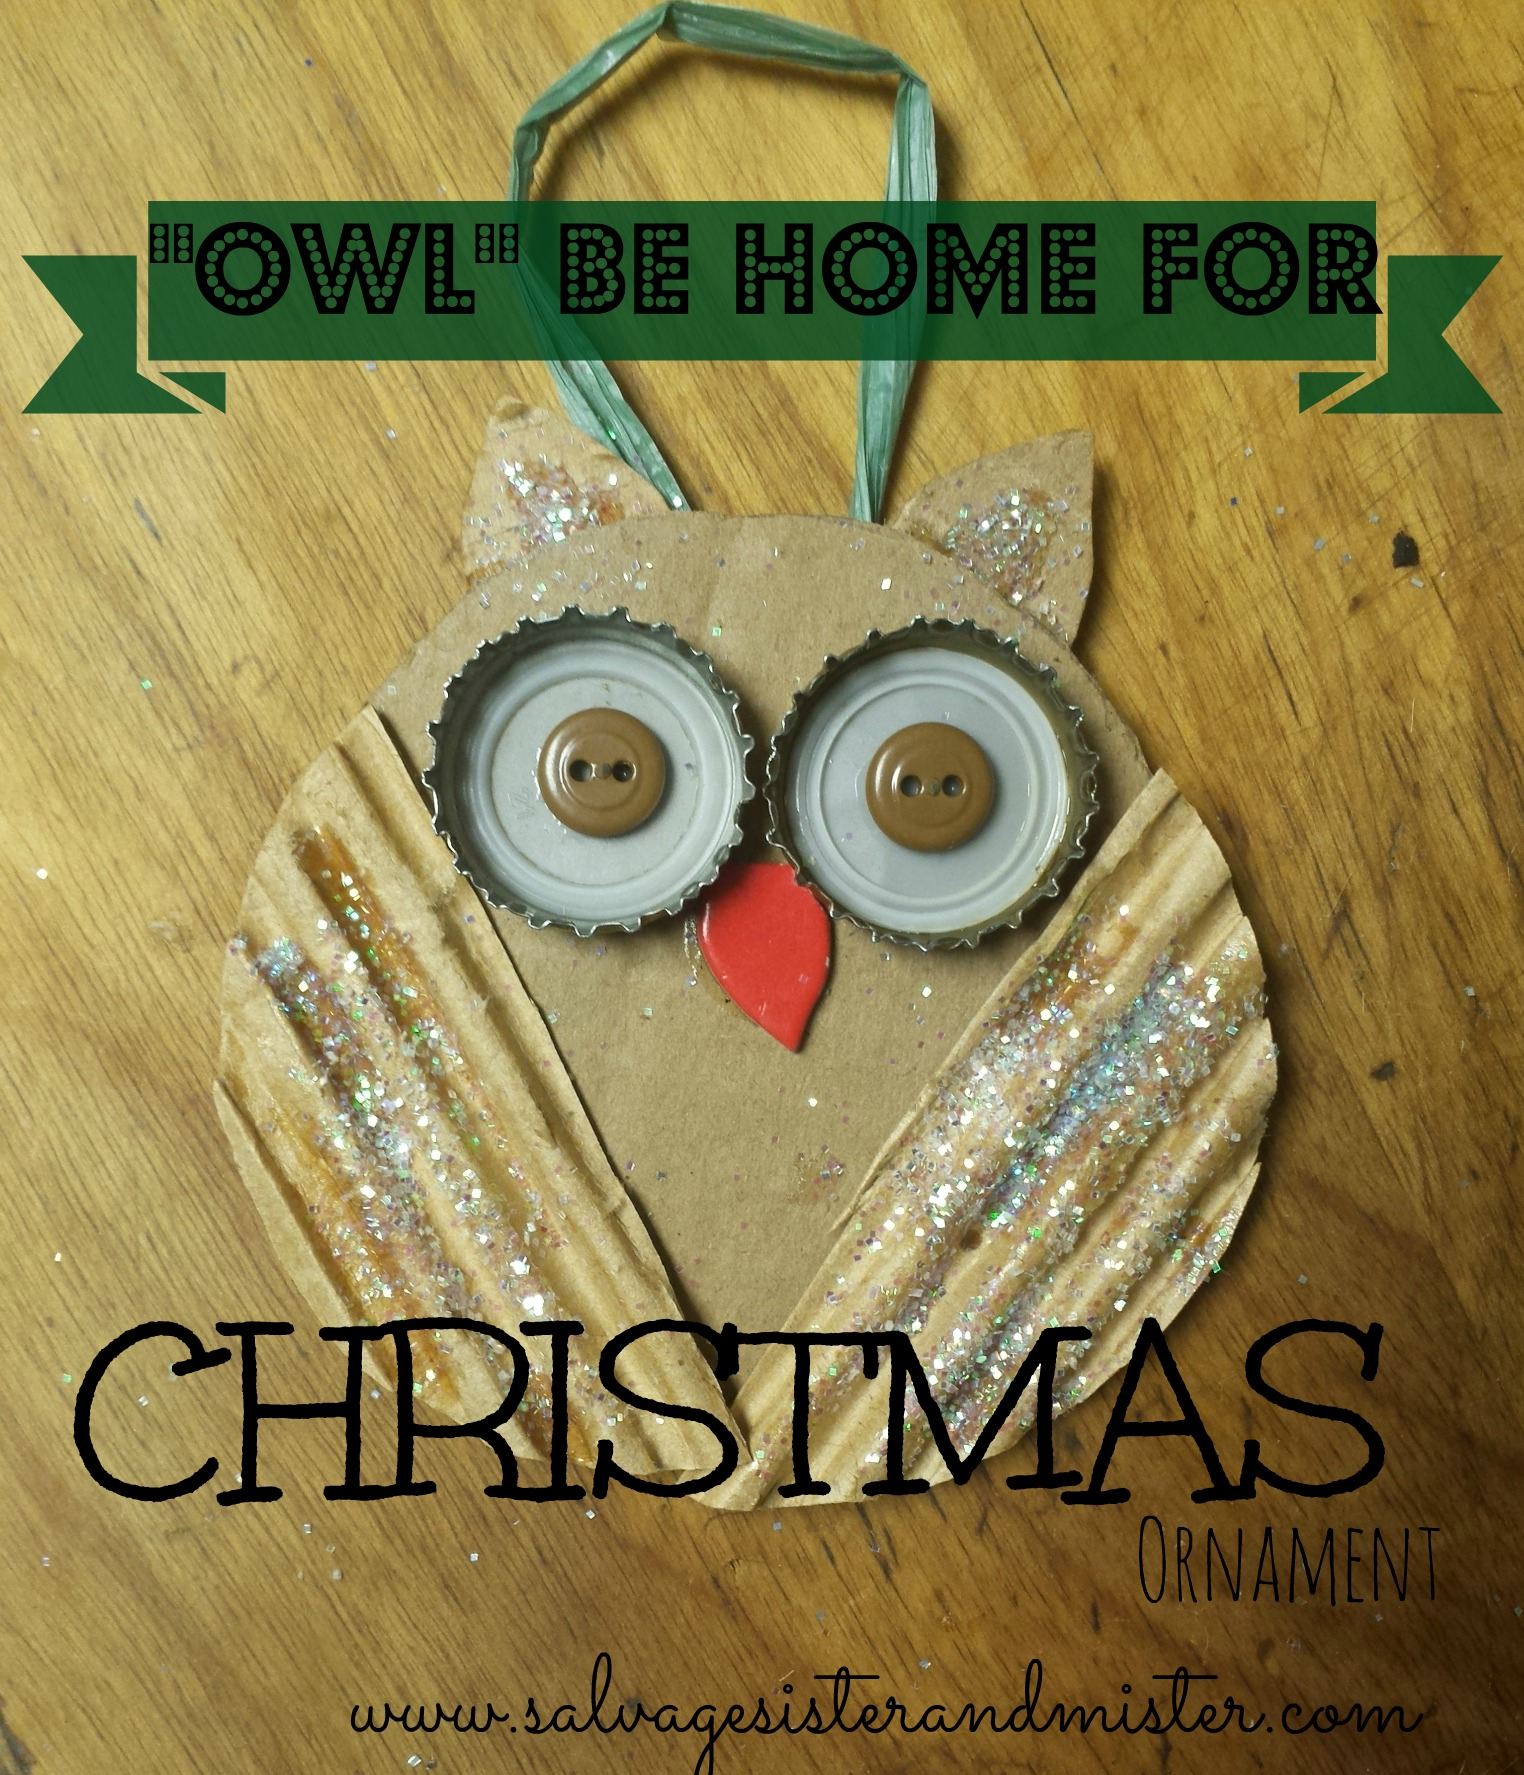 owl be home for christmas ornament